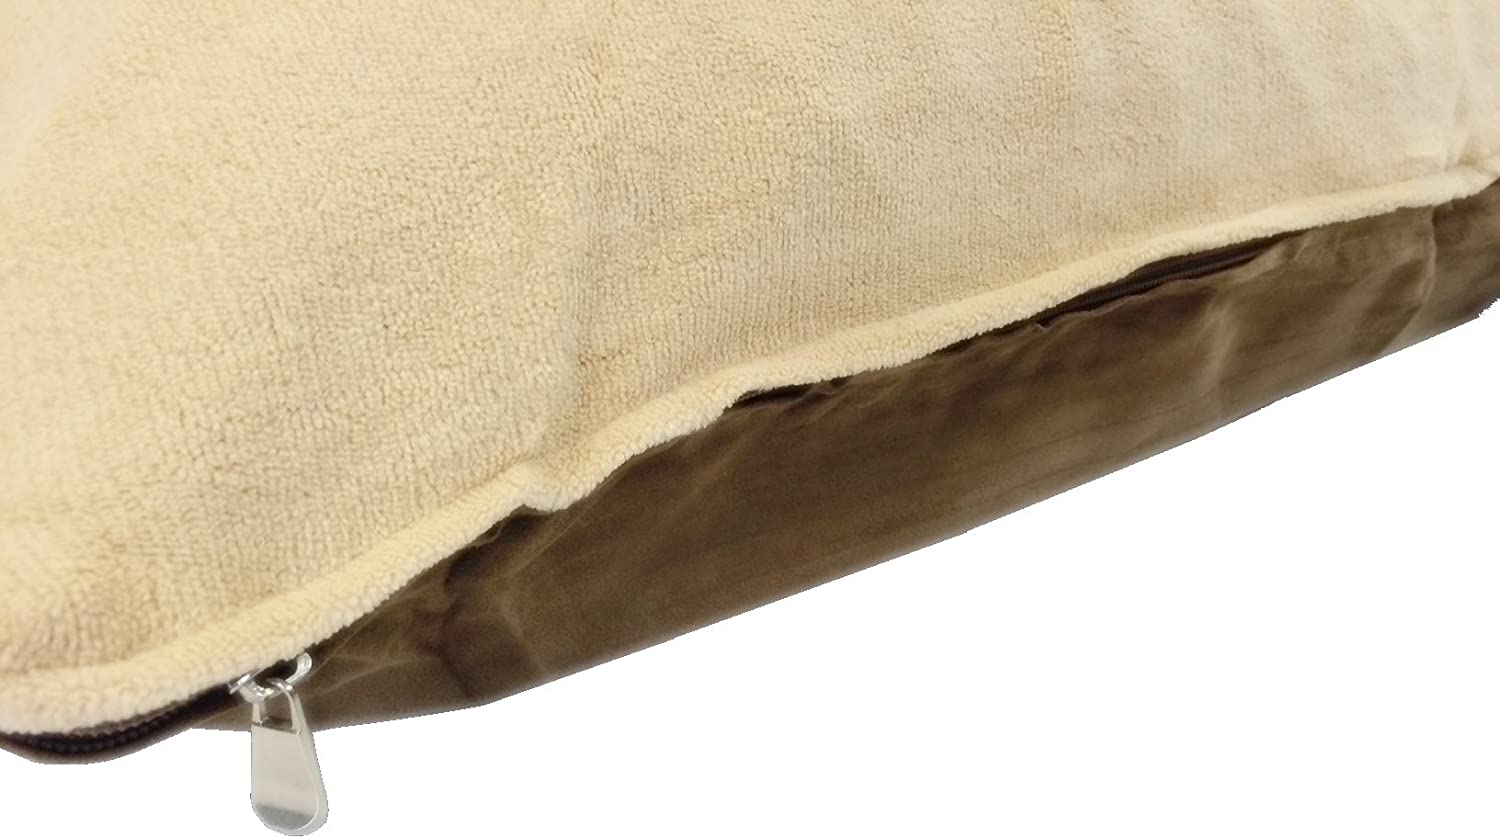 36 x29  Medium Size Removable Zippered Luxurious Soft Fleece Beige   Brown Suede Cover Case for Small to Medium Dogs  External Cover Only